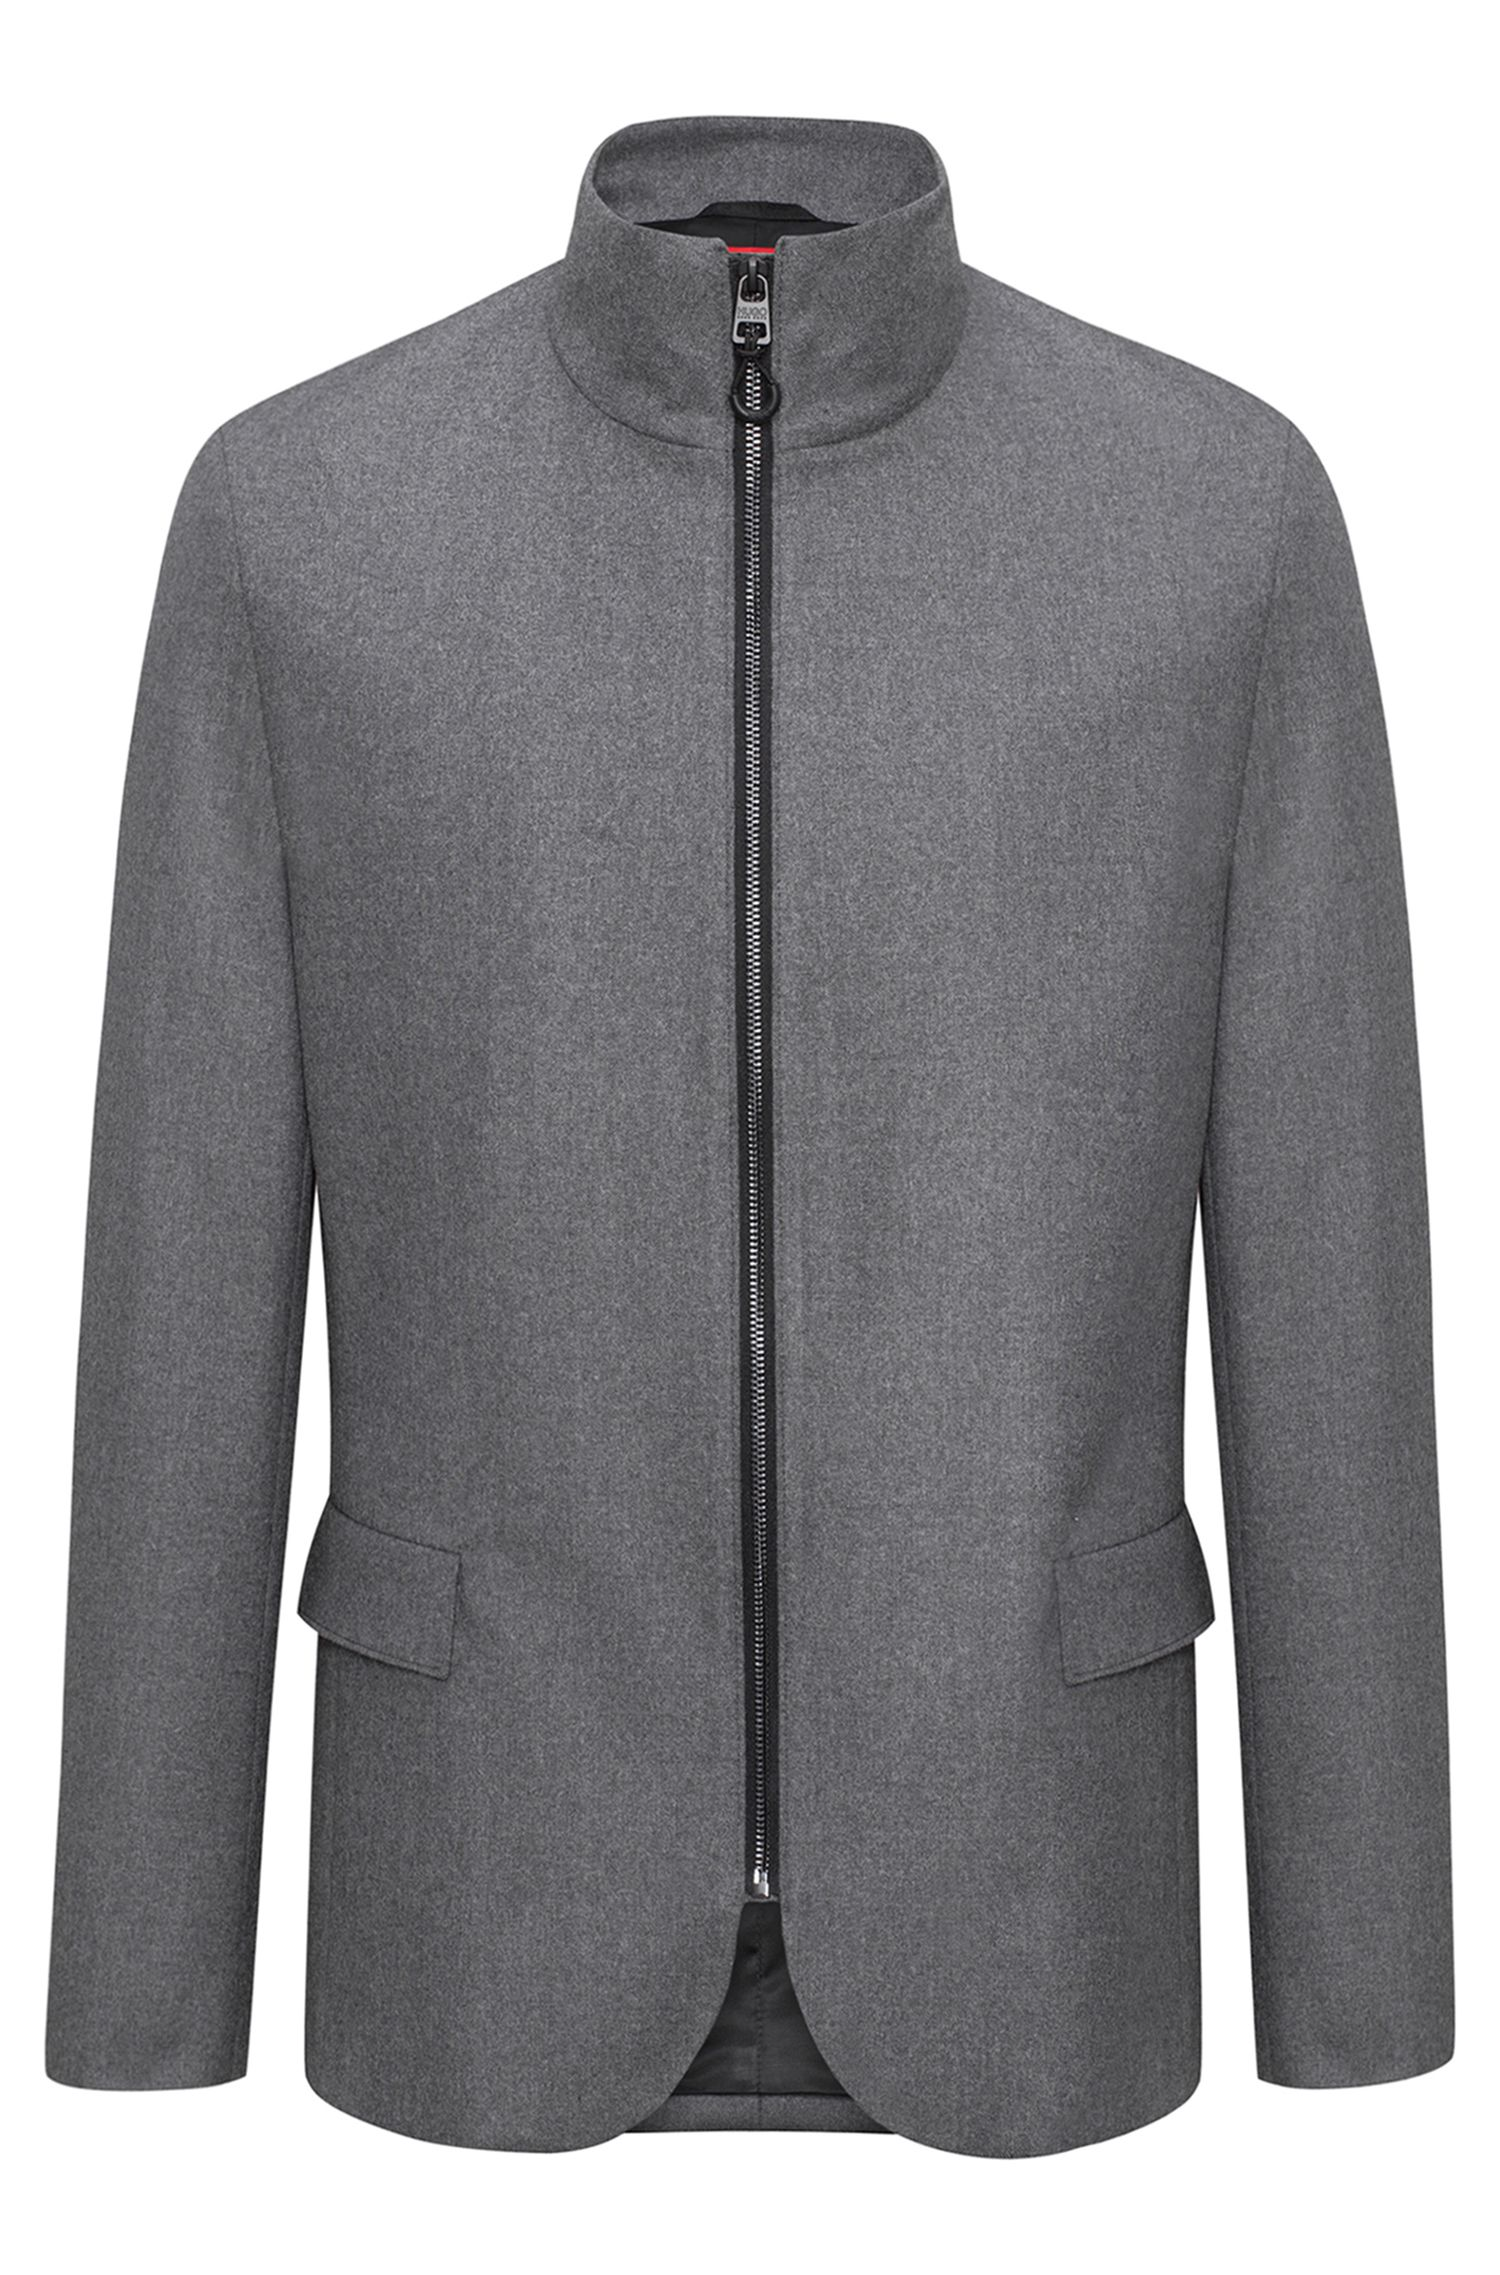 Regular-fit zip-through jacket in a wool blend